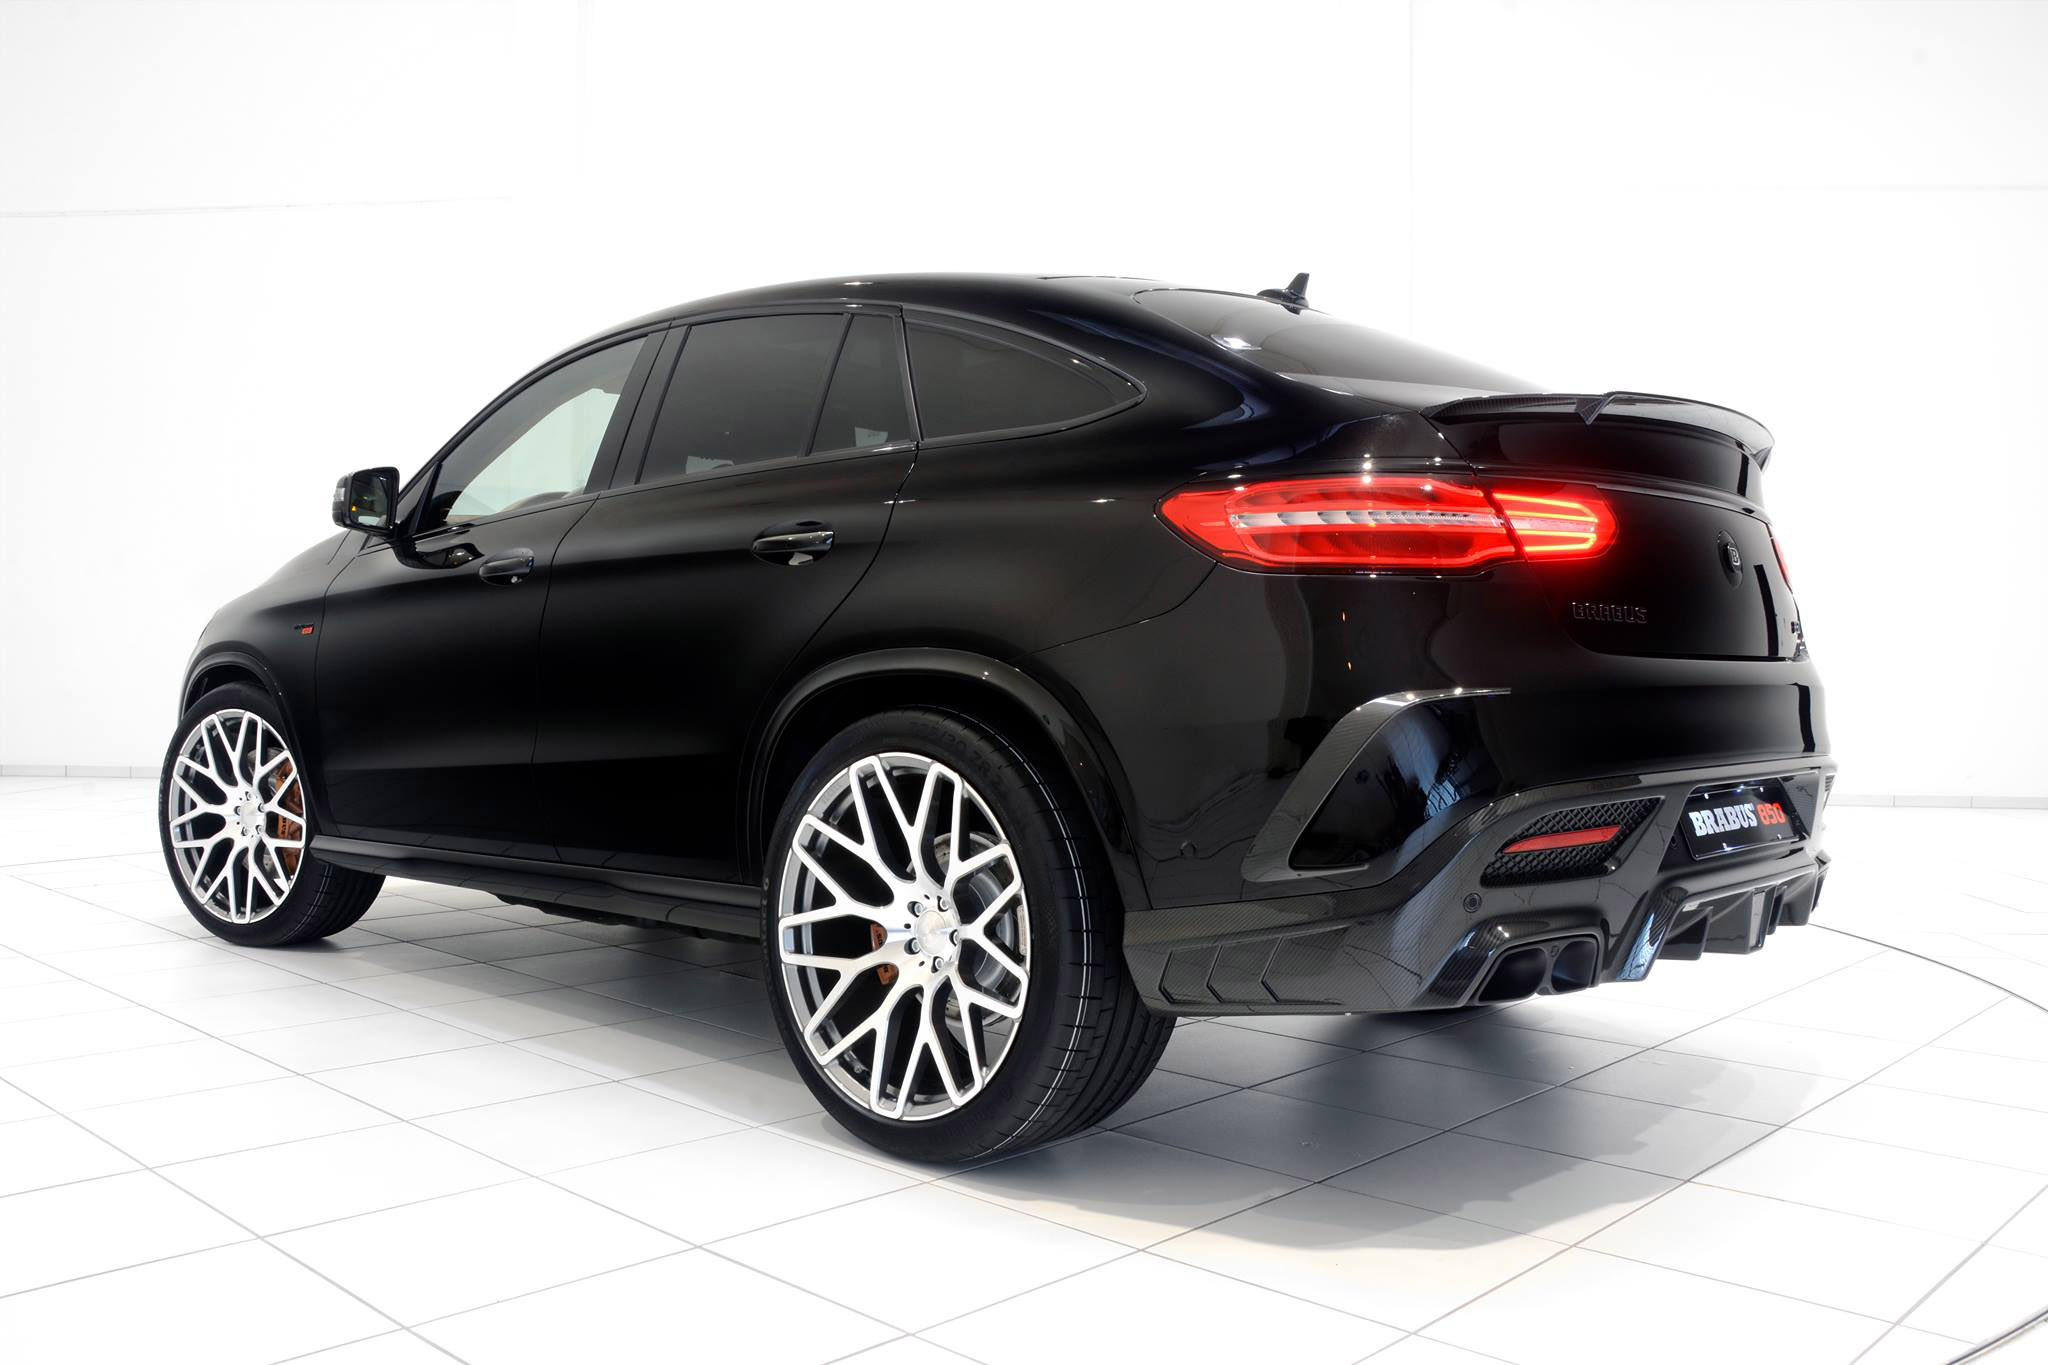 Exclusive Car Wallpapers Brabus Mercedes Benz Gle 63 Coupe With 850hp